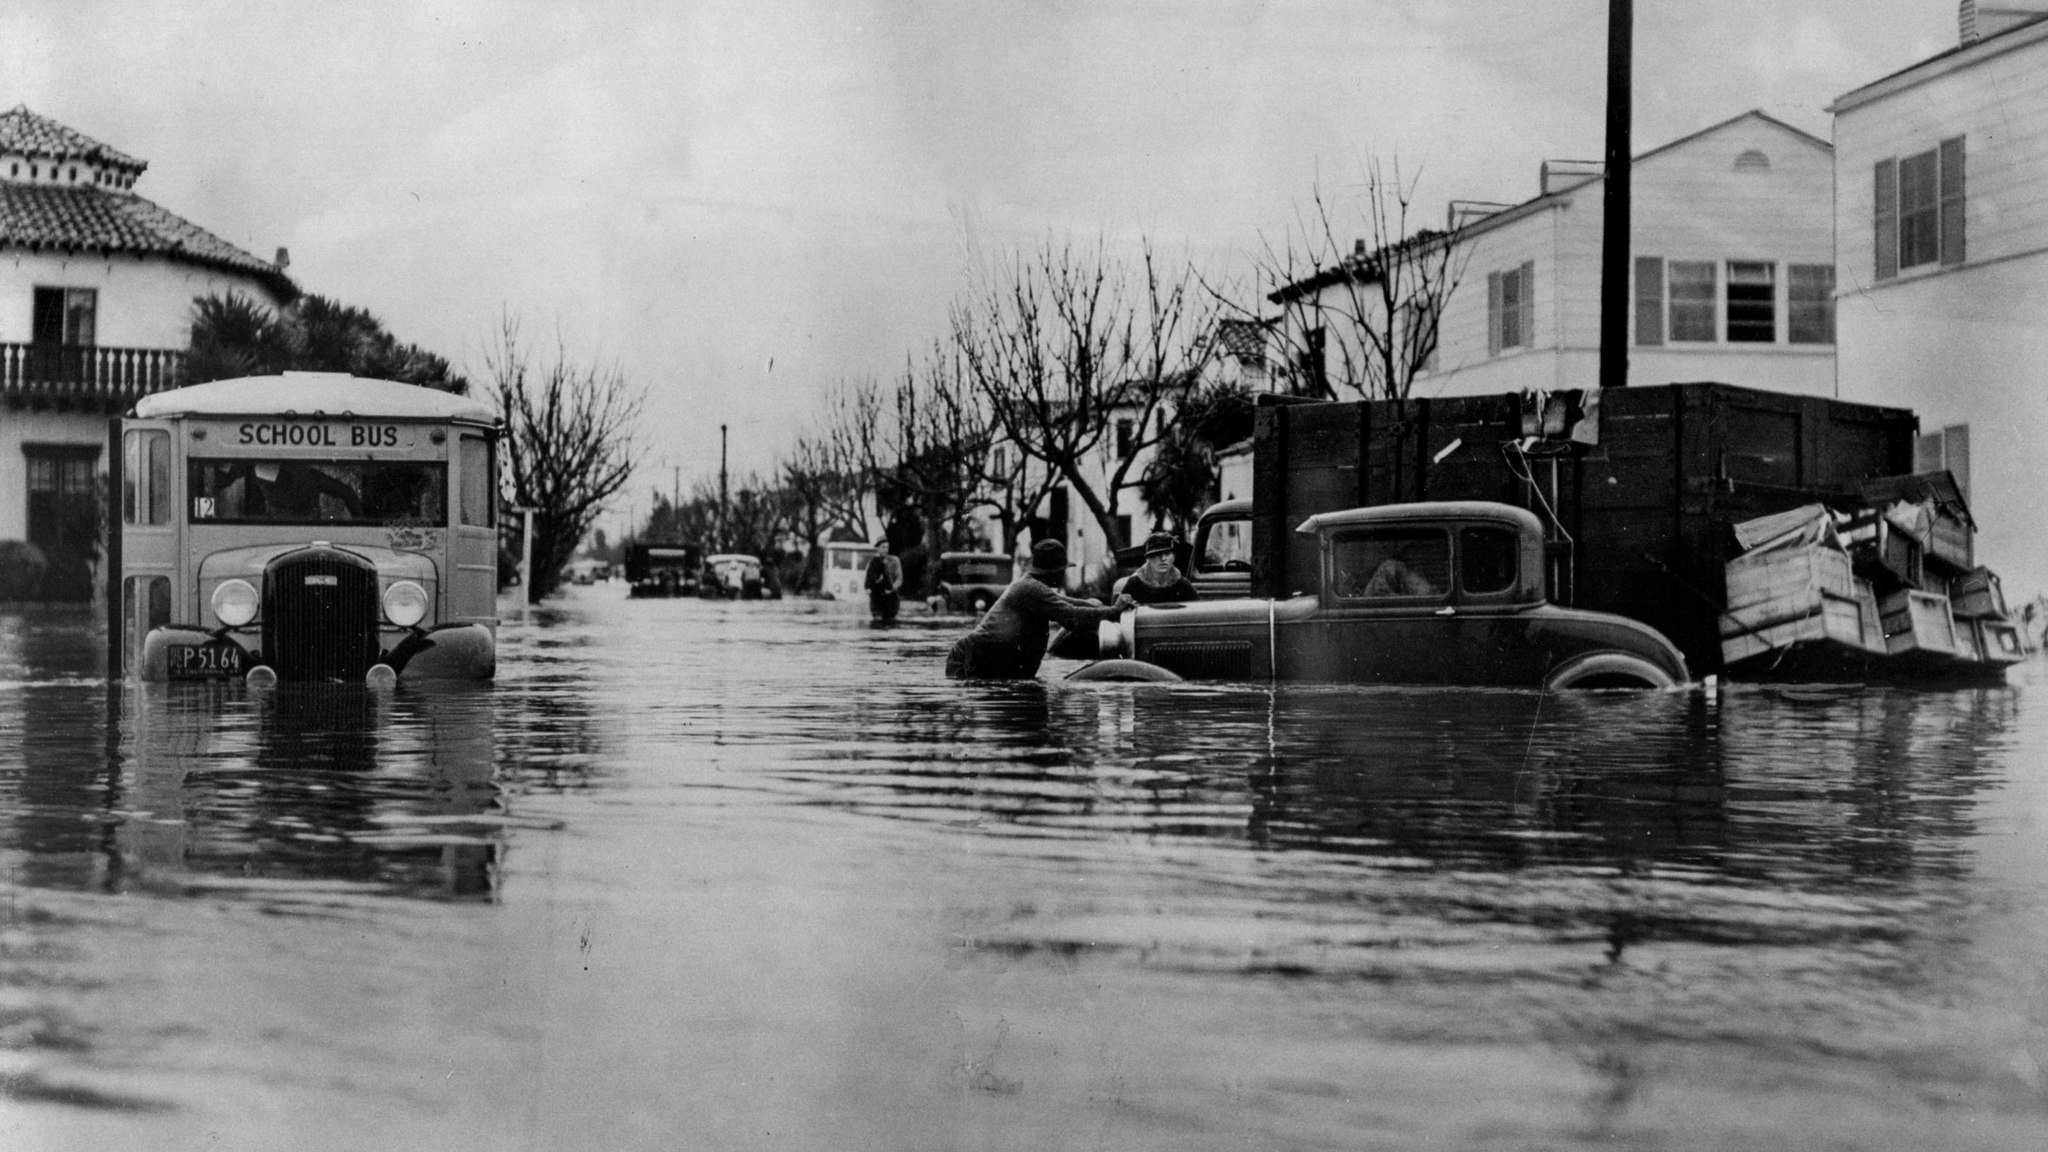 March 2, 1938: Flooding in Southern California killed dozens. This bus became stuck at West Forty-th